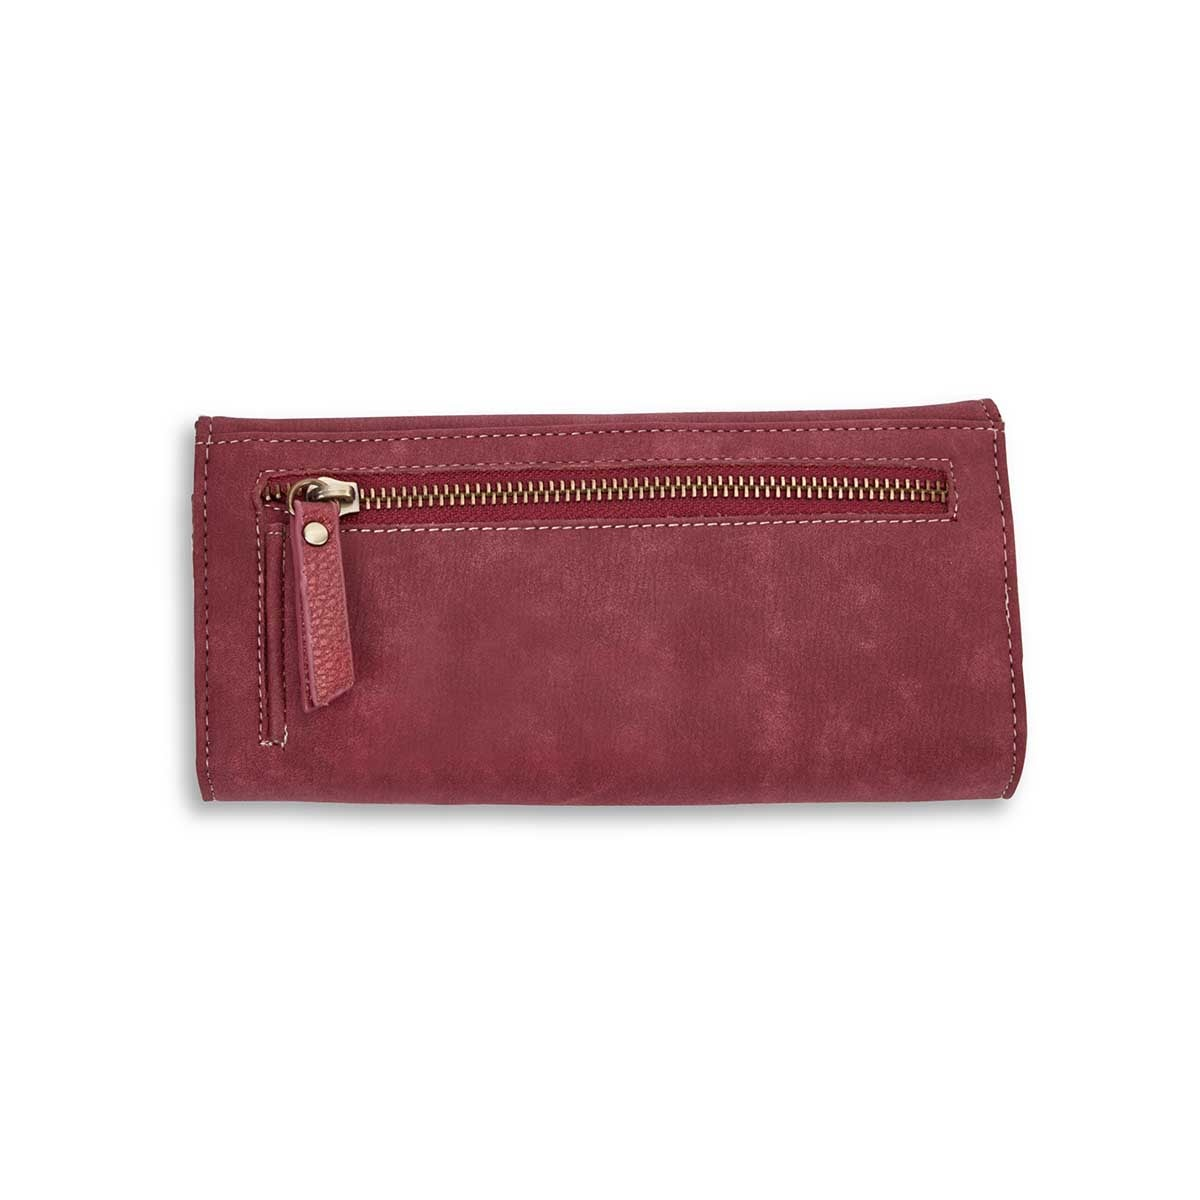 Lds Frost Collection berry deluxe clutch